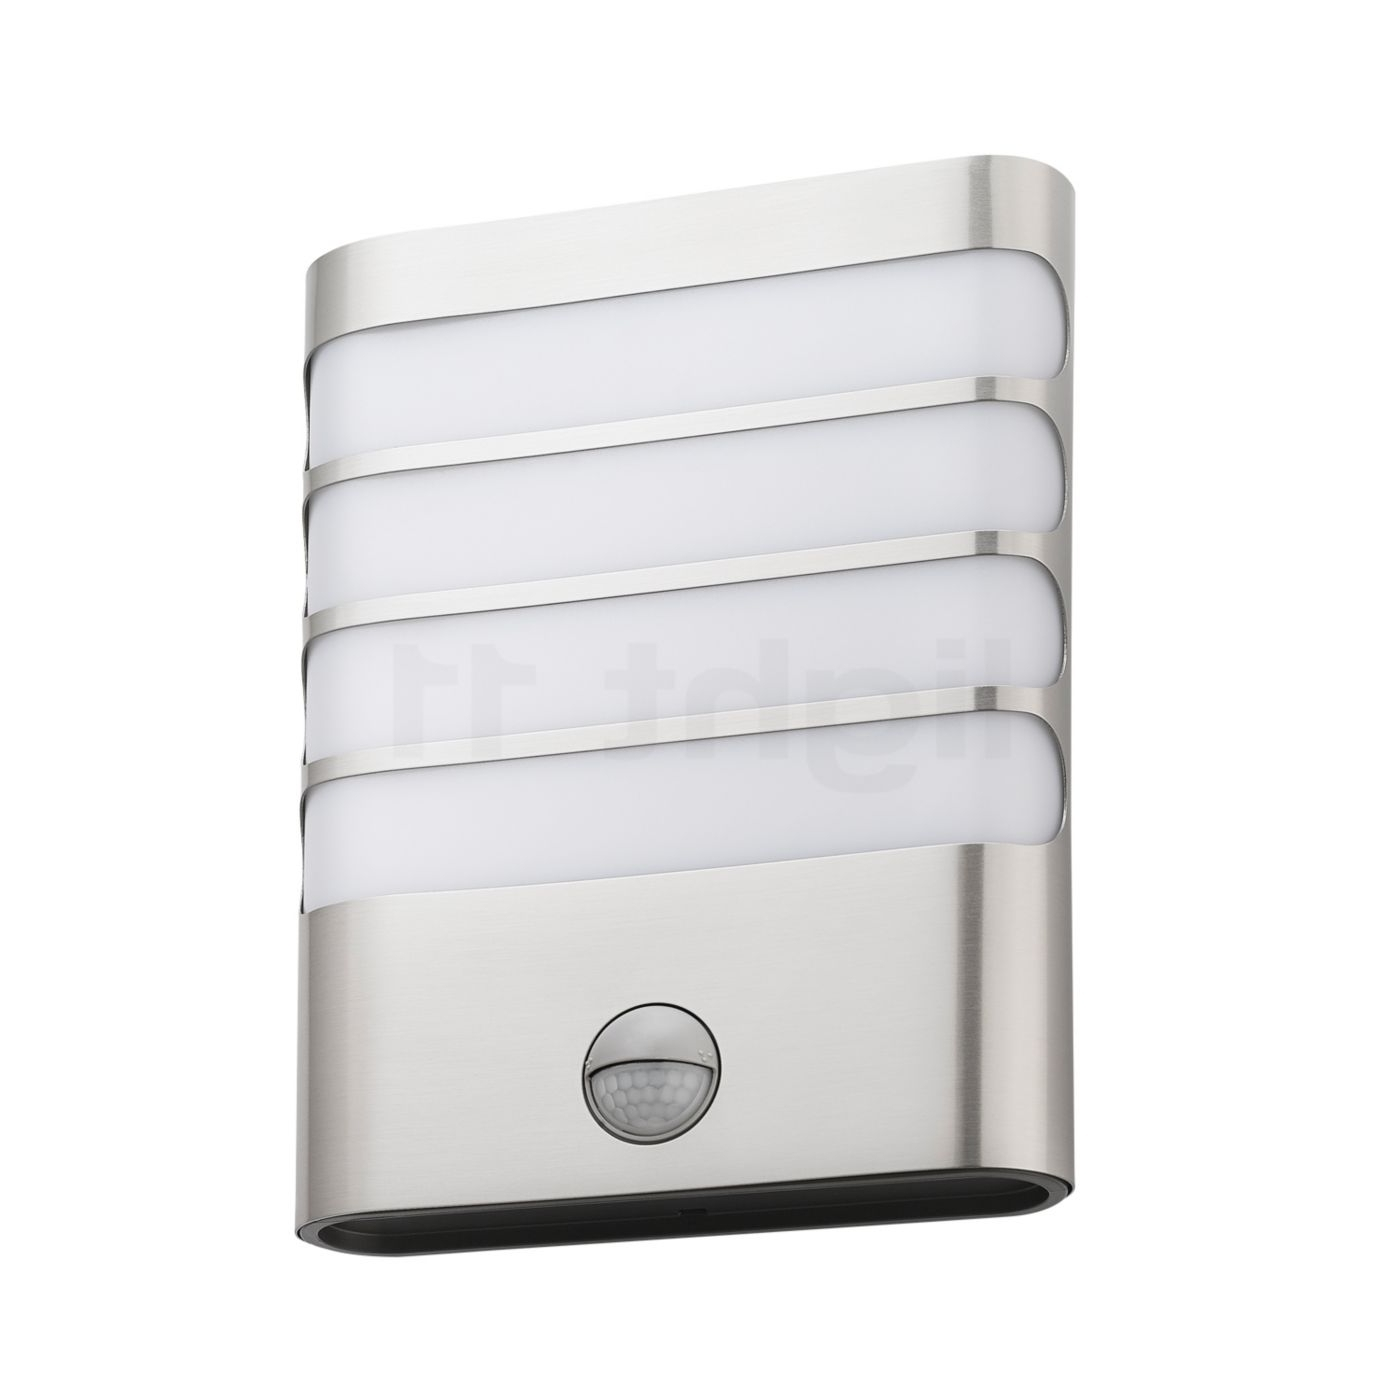 Led Outdoor Raccoon Wall Lights With Motion Detector In Most Up To Date Philips Mygarden Raccoon 17274 Wall Light With Motion Detector Led (View 8 of 20)